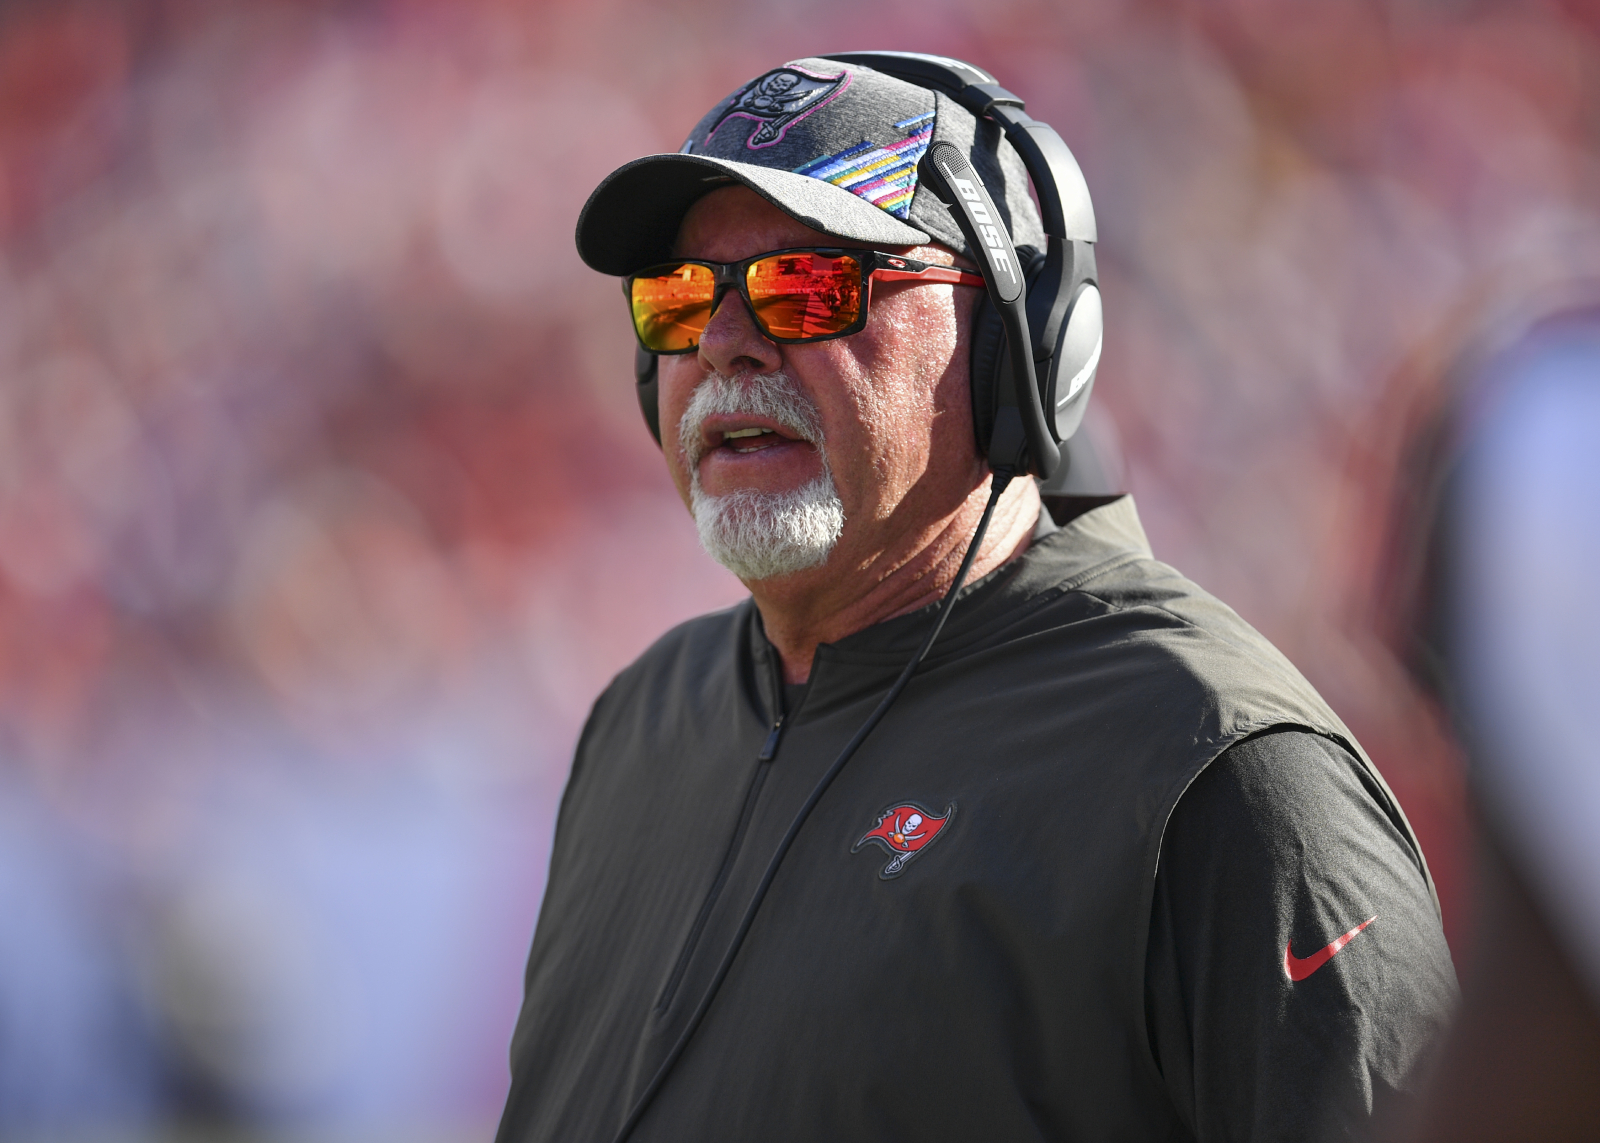 Bruce Arians and the Buccaneers have a huge game in Week 9. Ahead of the game, Arians sent out a strong message about Saints RB Alvin Kamara.